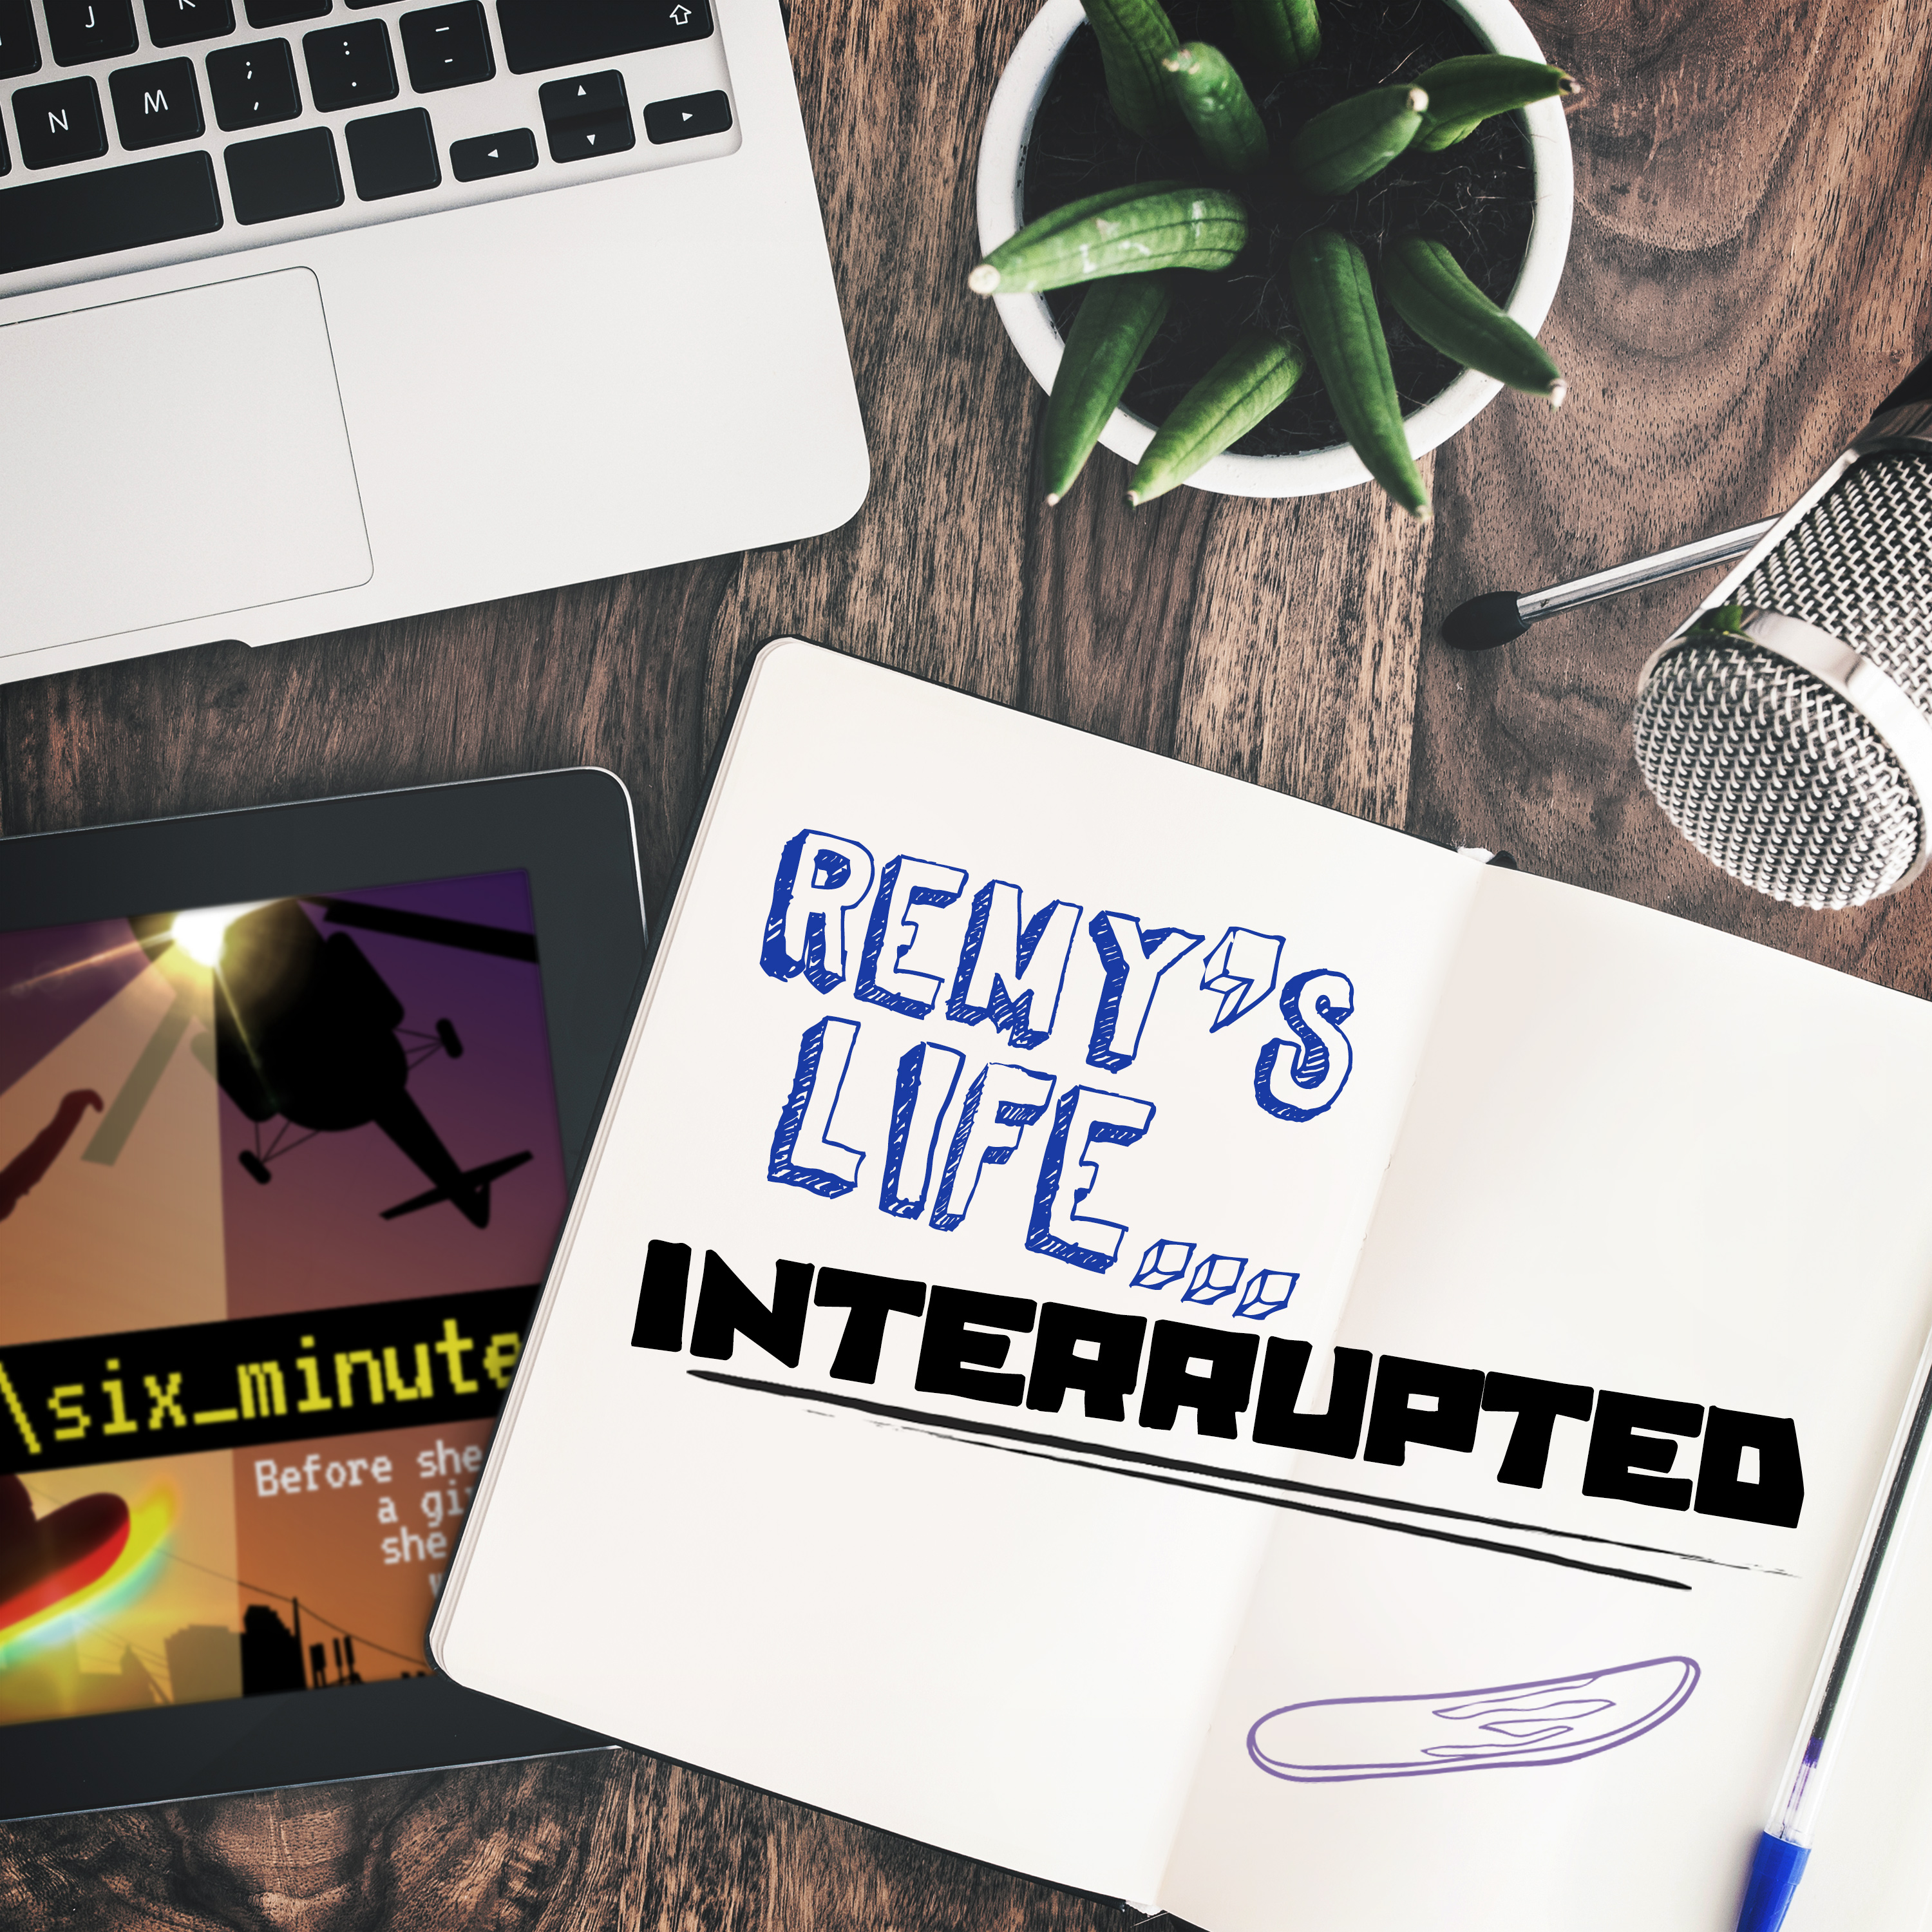 Remy's Life Interrupted: EP69